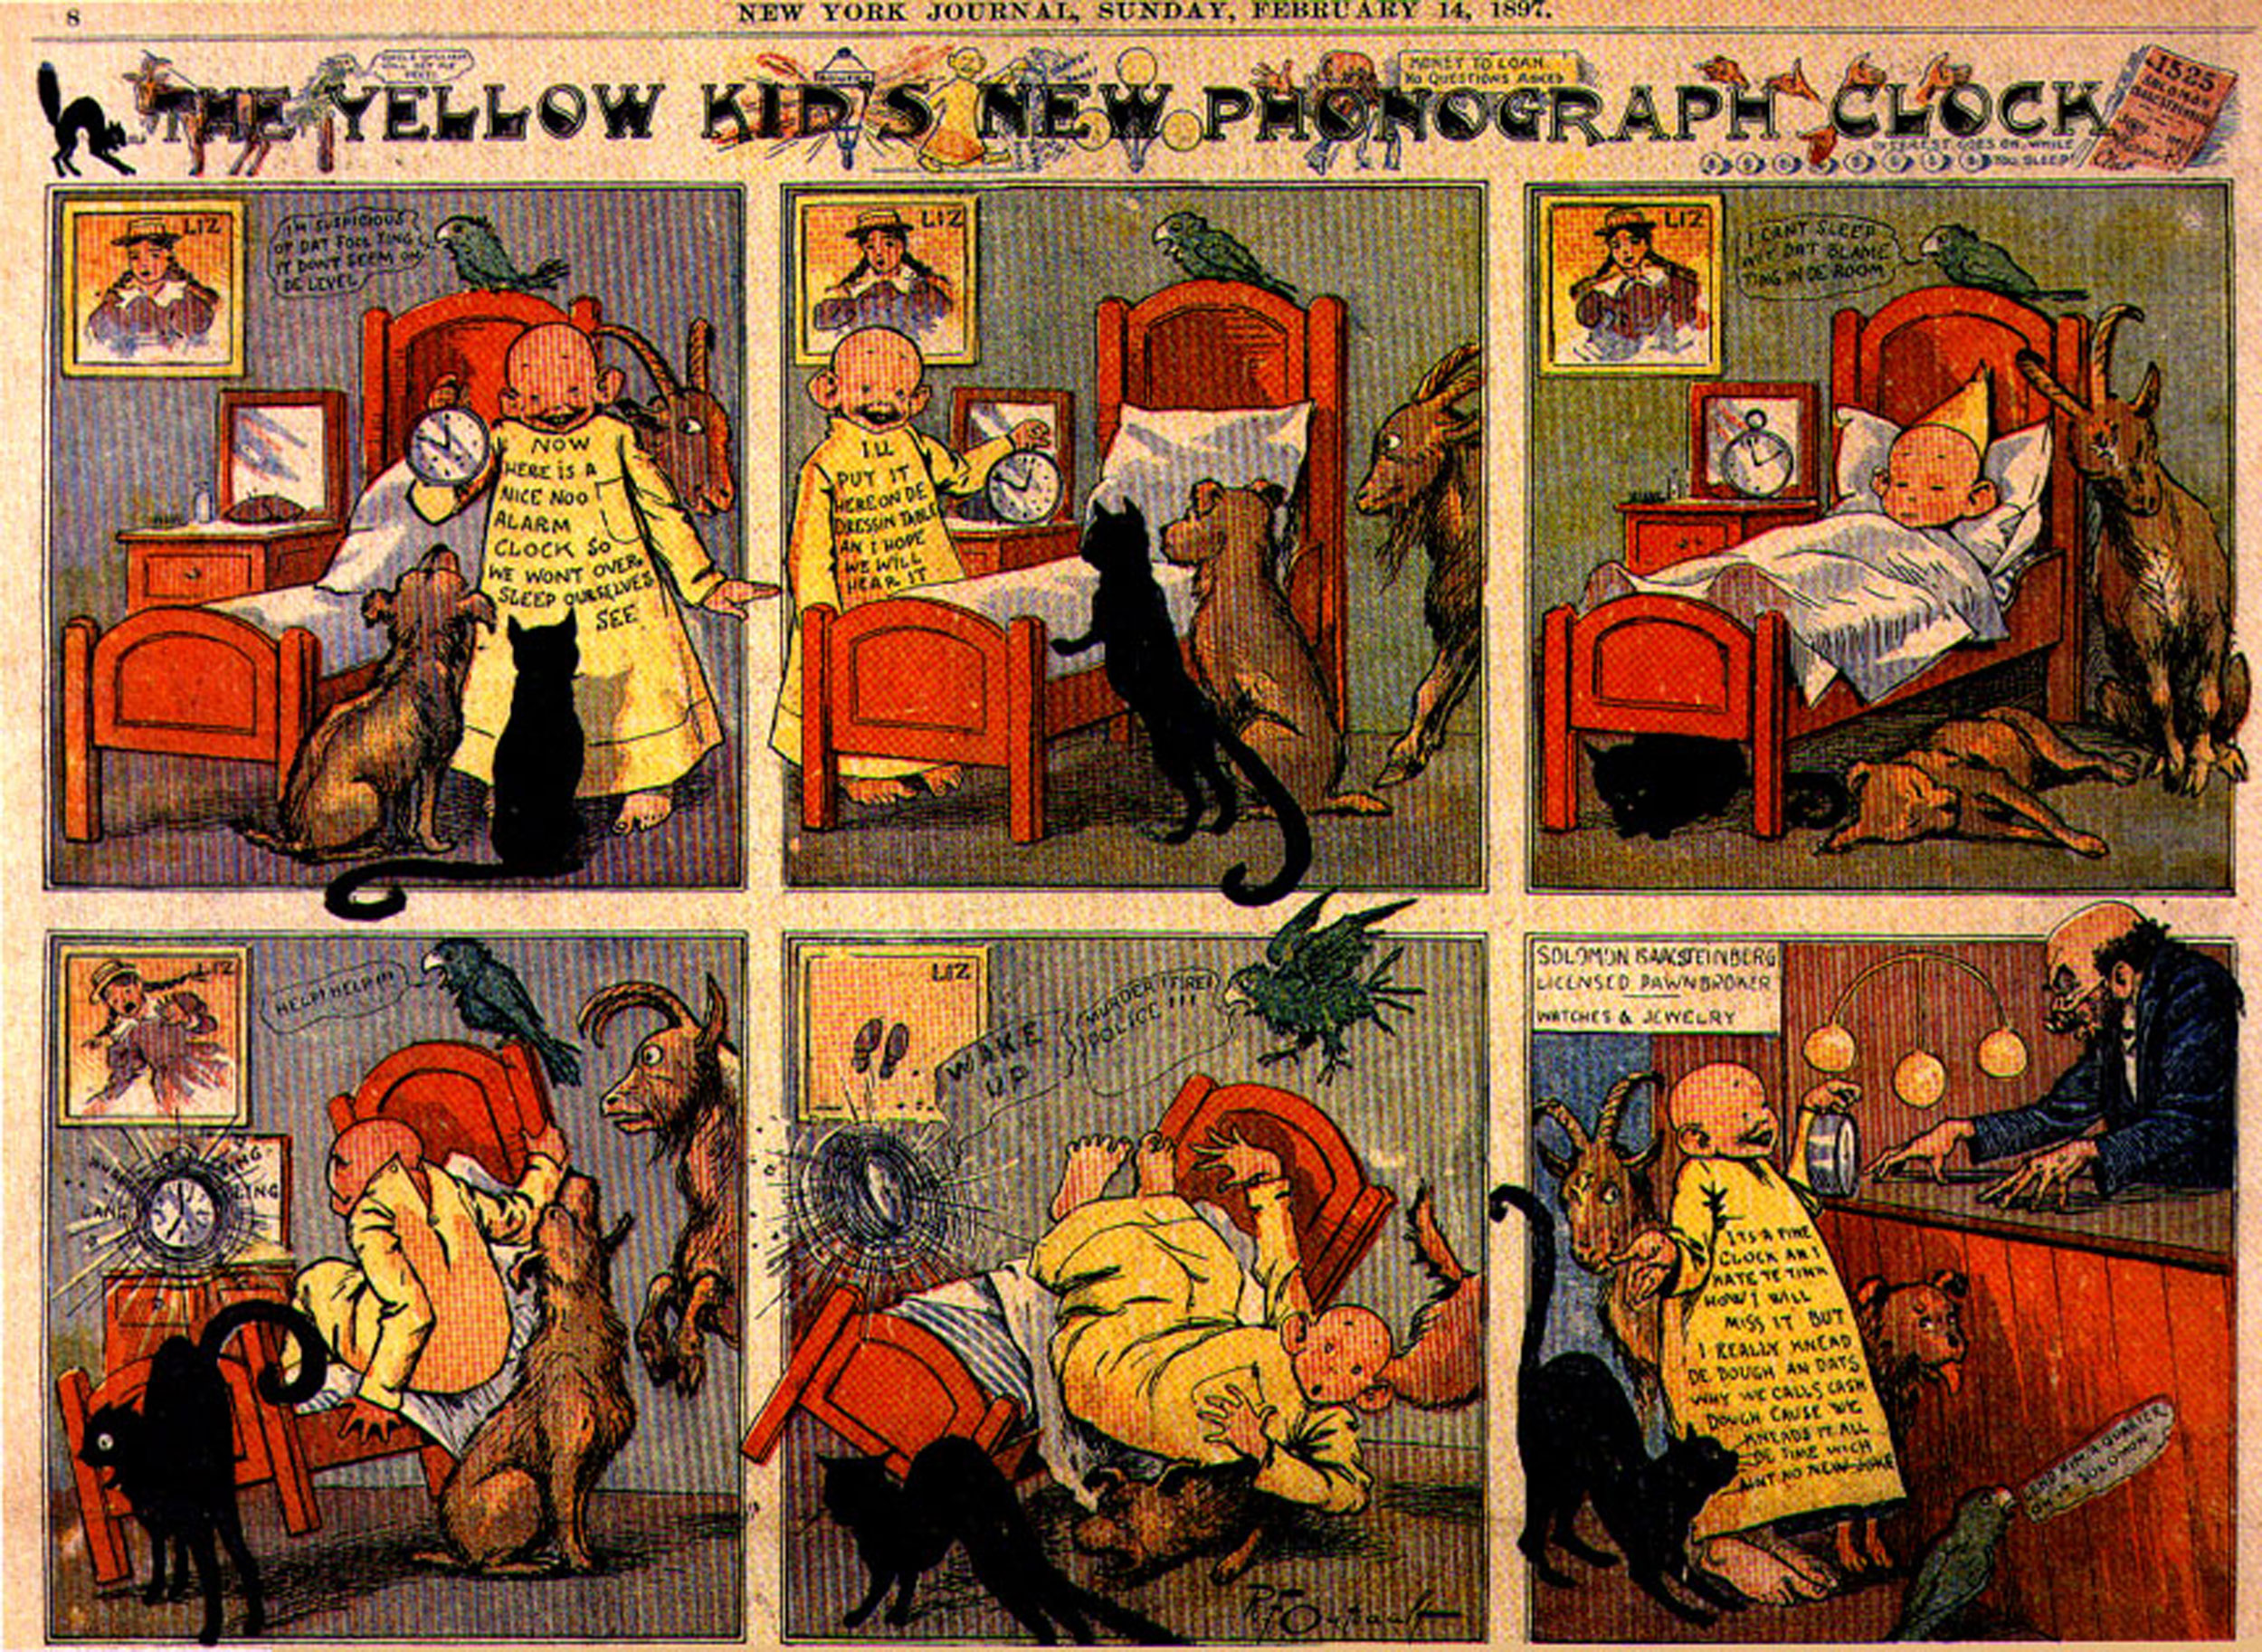 the effects of the yellow journalism in the world of publication Although the term yellow journalism was not coined until at least 1897, sensational journalism emerged as a major trend in the 1880s with joseph pulitzer's purchase of the new york world, but members of the intellectual and literary communities had criticized this new journalism as early as 1881 4 according to [end page 74] w joseph .